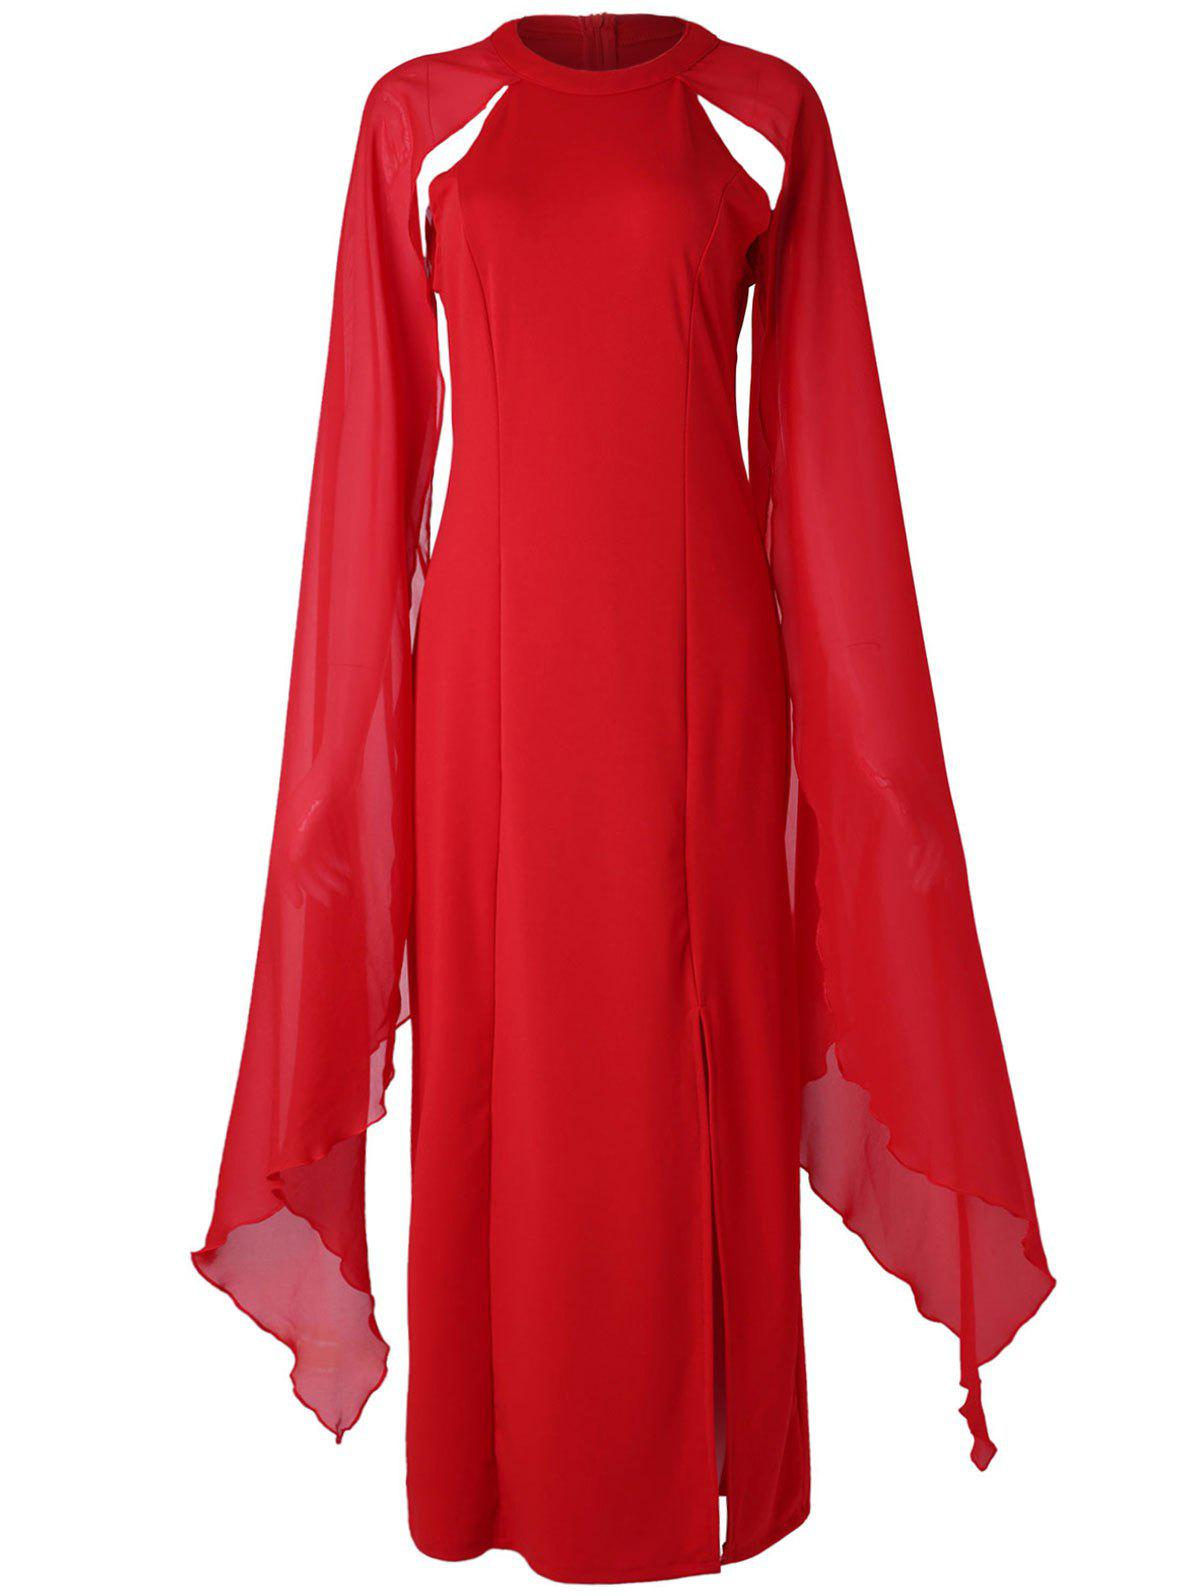 Best Crew Neck Flowy Sleeve Long Dress